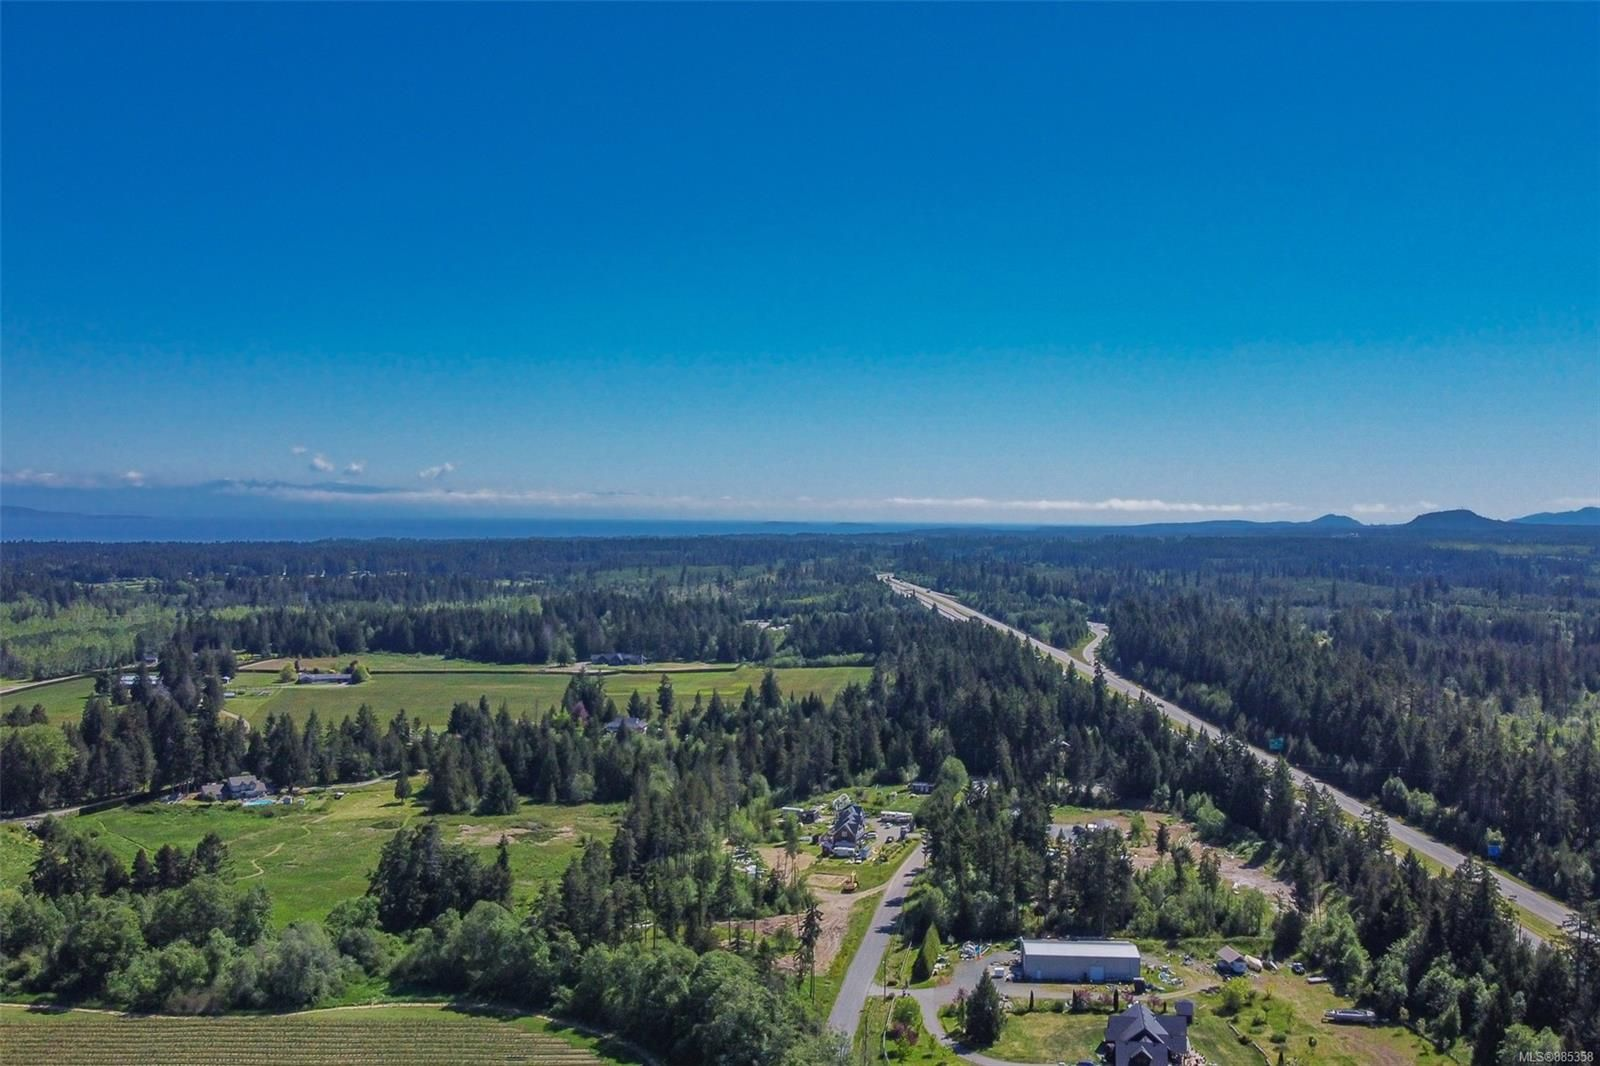 Photo 74: Photos: 2850 Peters Rd in : PQ Qualicum Beach House for sale (Parksville/Qualicum)  : MLS®# 885358